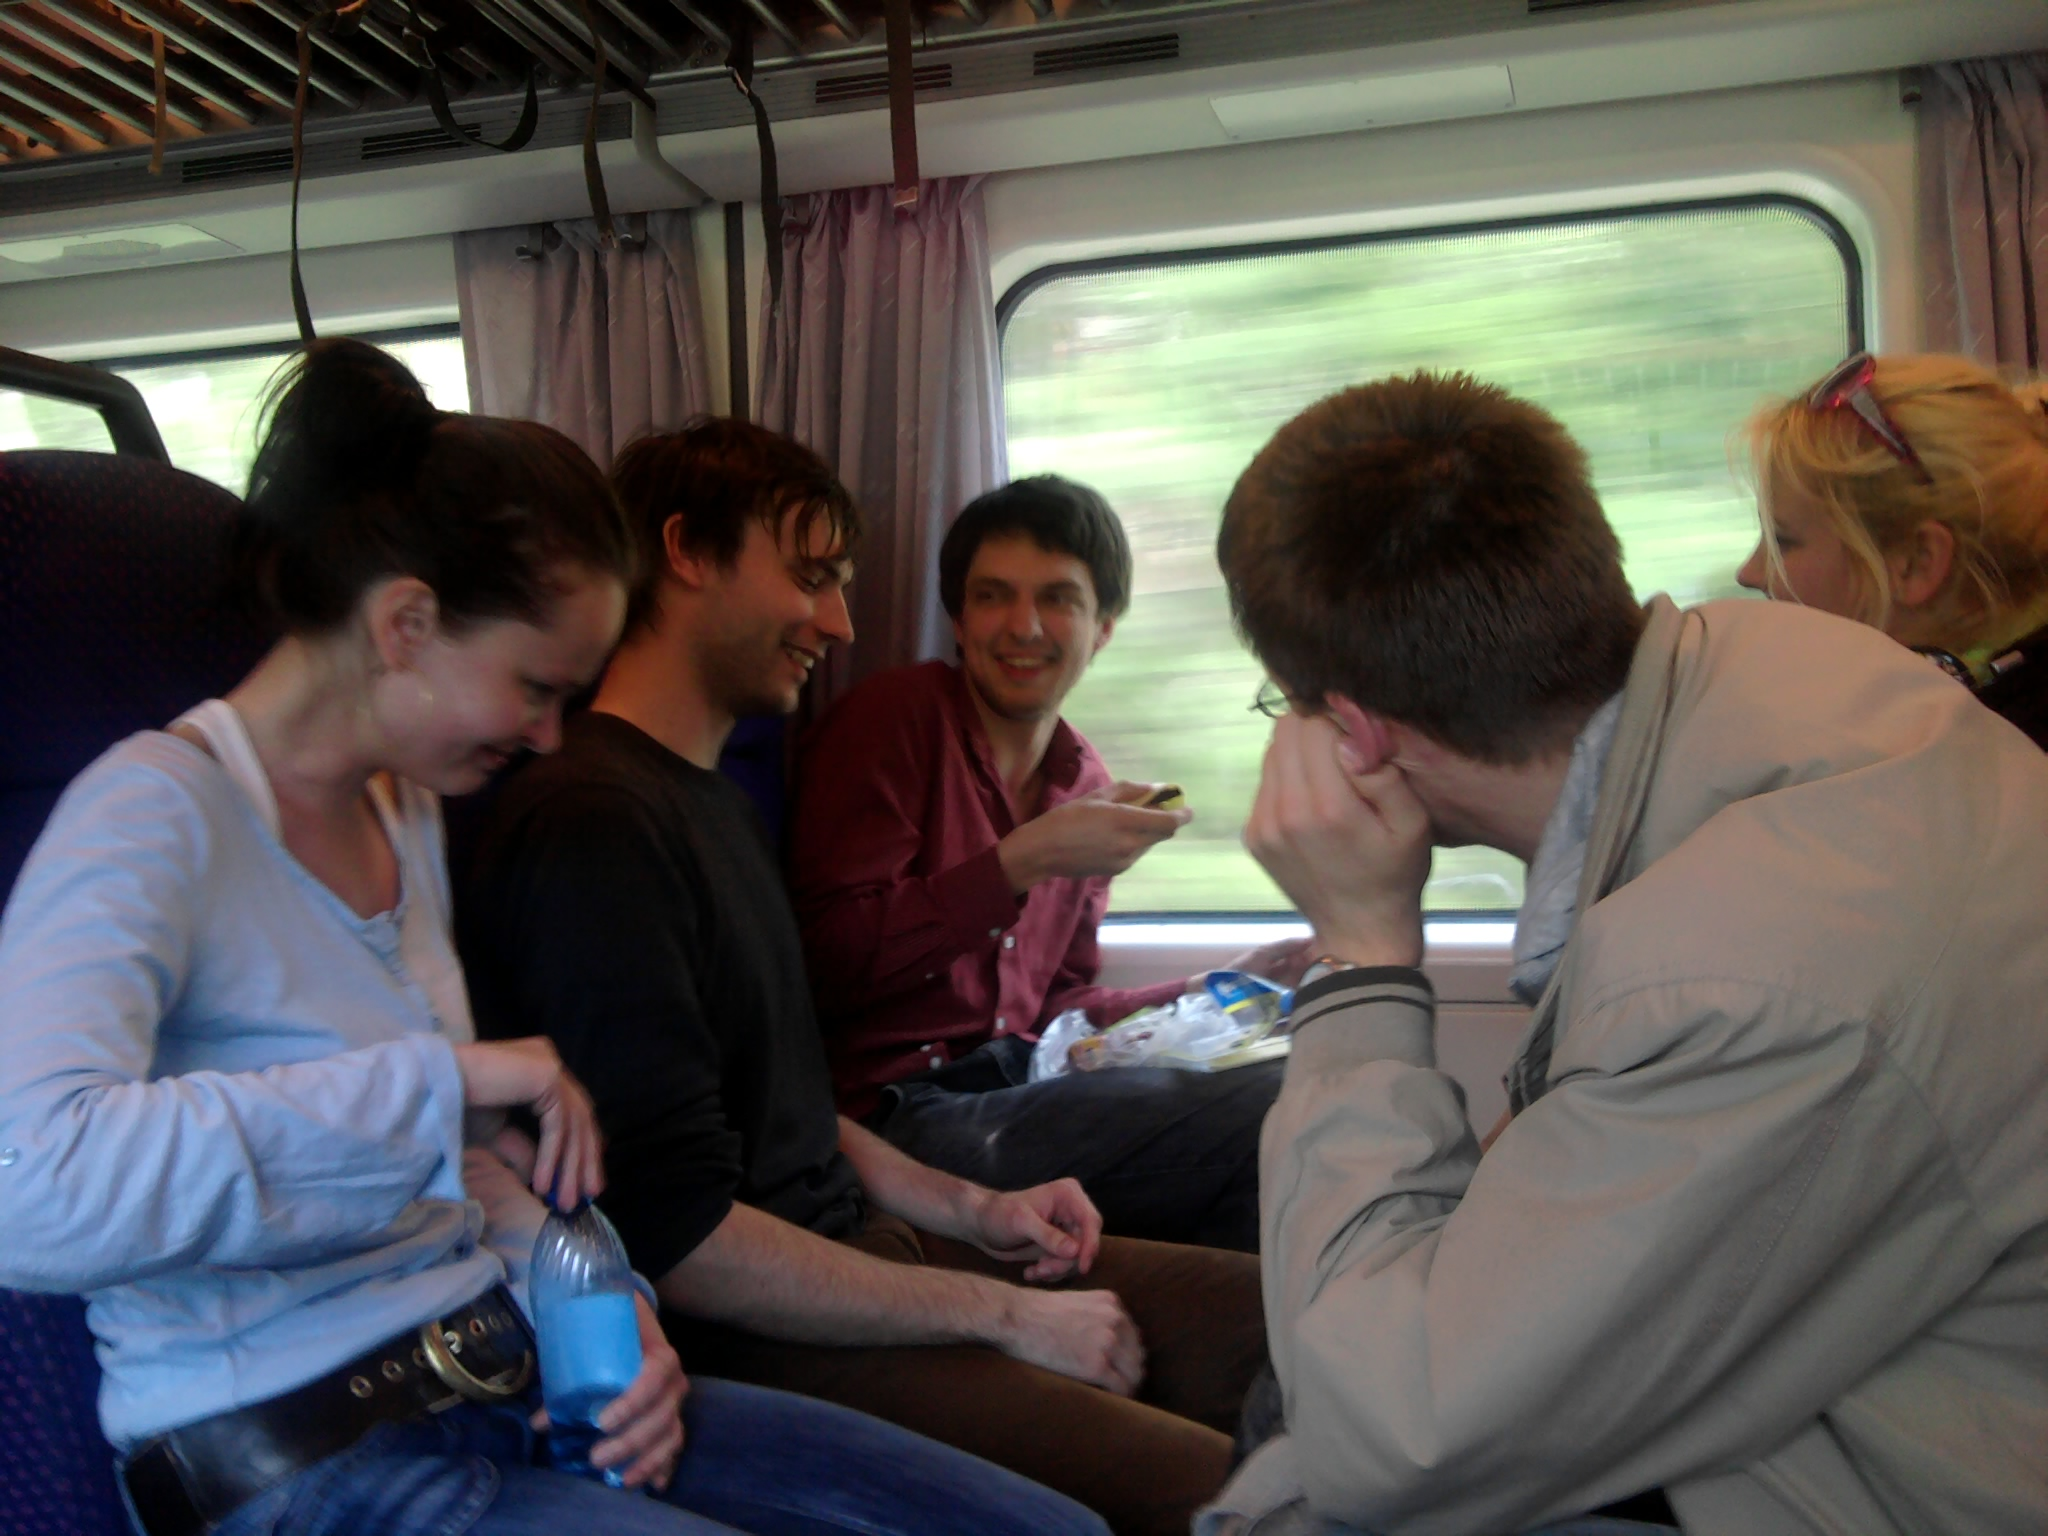 Jaa!, on a train to Tampere